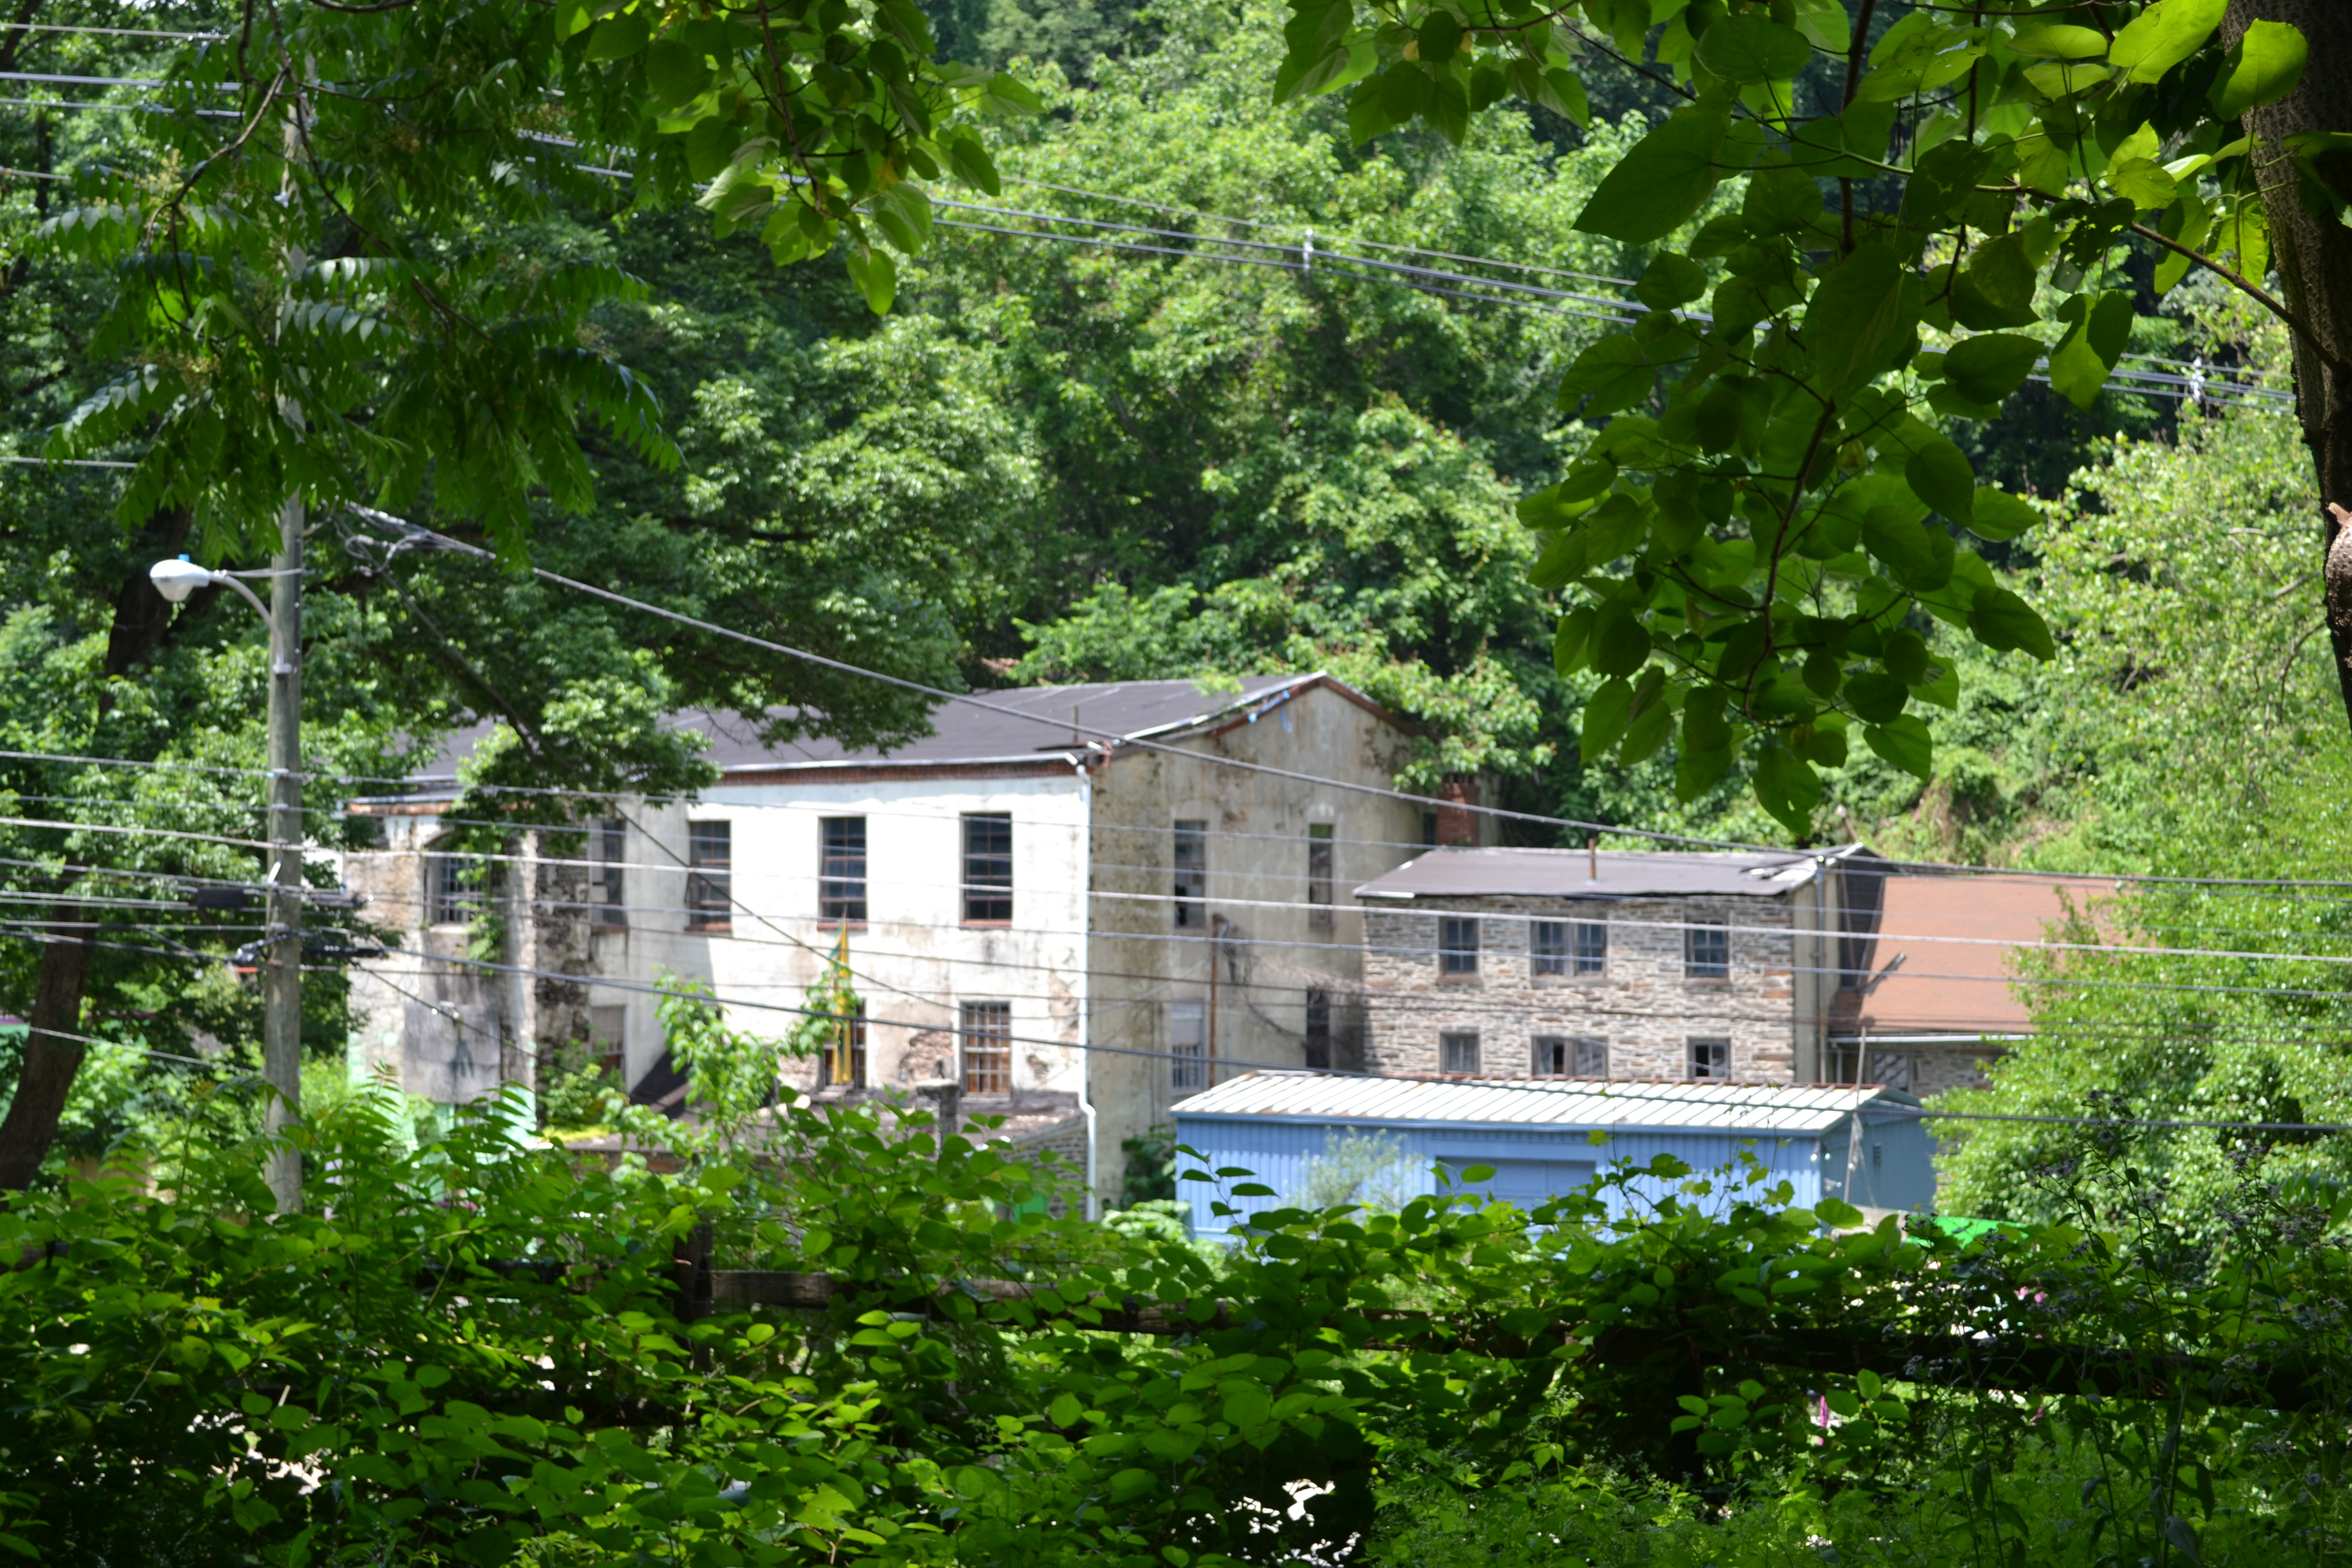 An abandoned mill building stands across from the Rock Hill Road and Belmont Ave end of the trail